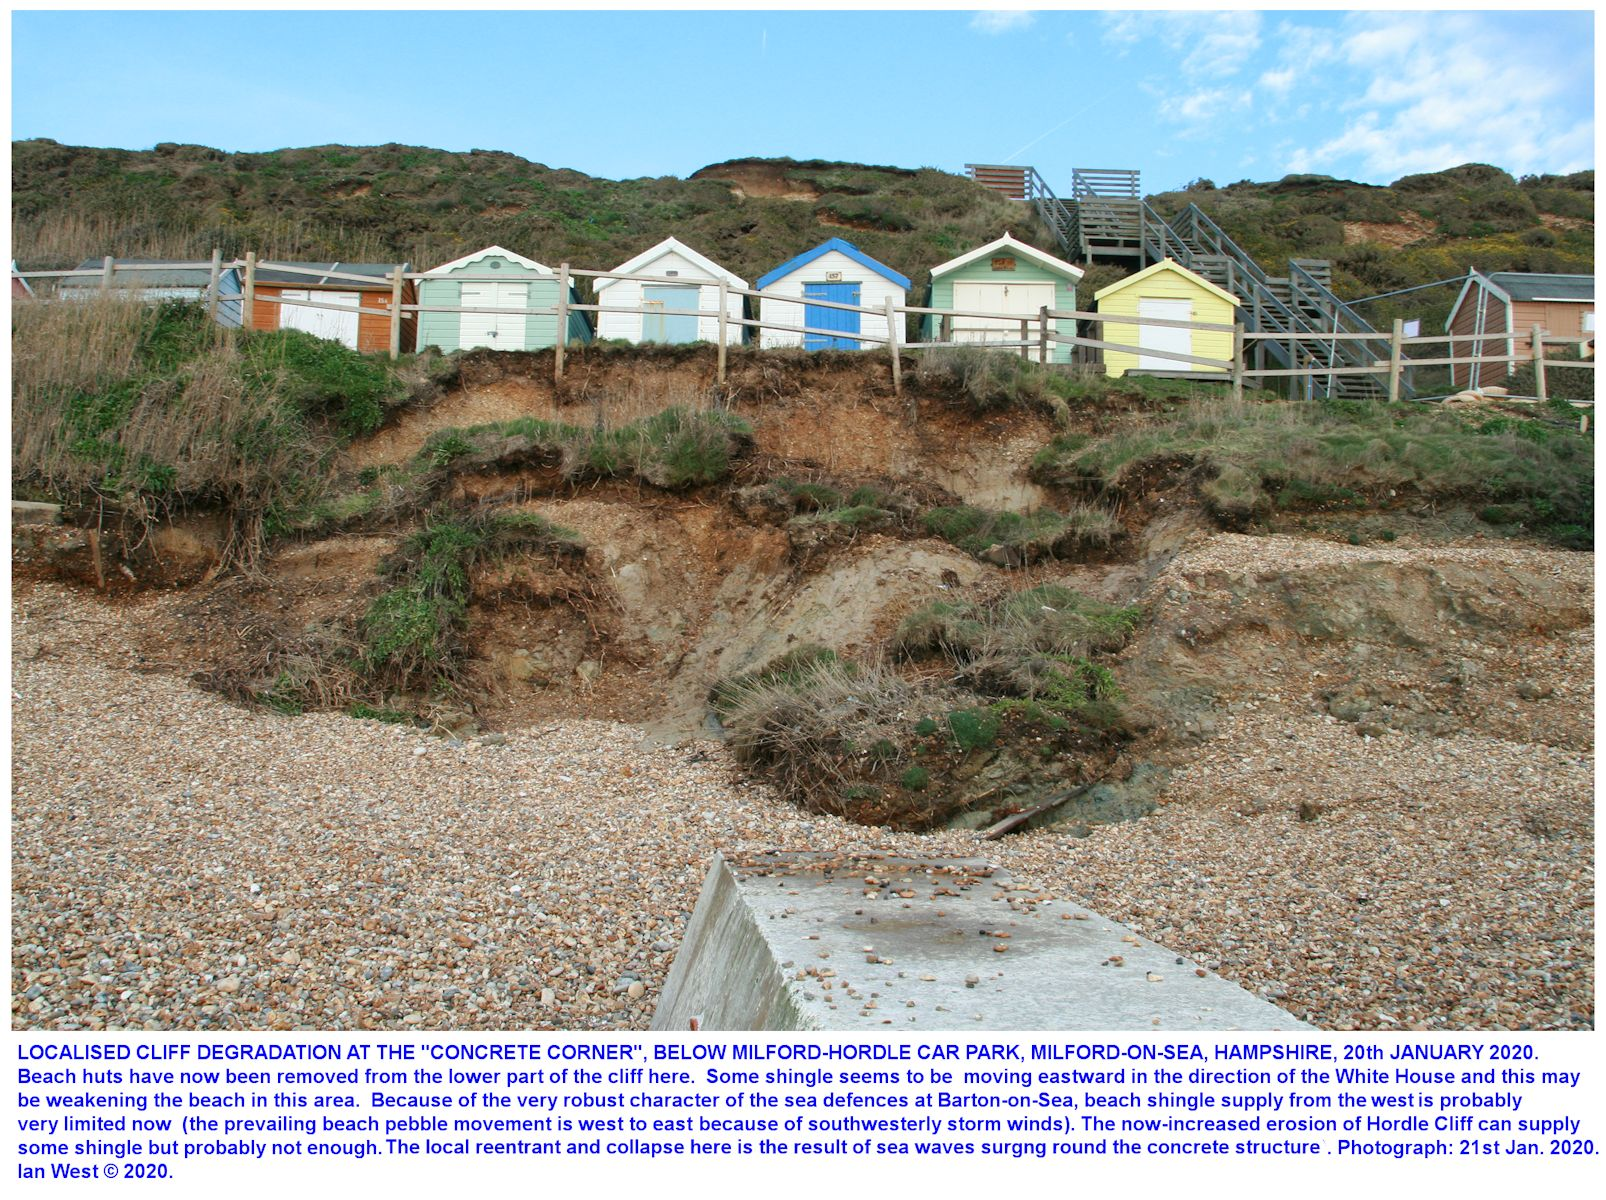 Localised increased, cliff erosion adjacent to a concrete corner structure, a type of sea-wall, seaward of the eastern end of the Hordle-Milford car park, as seen on the 20th January 2020